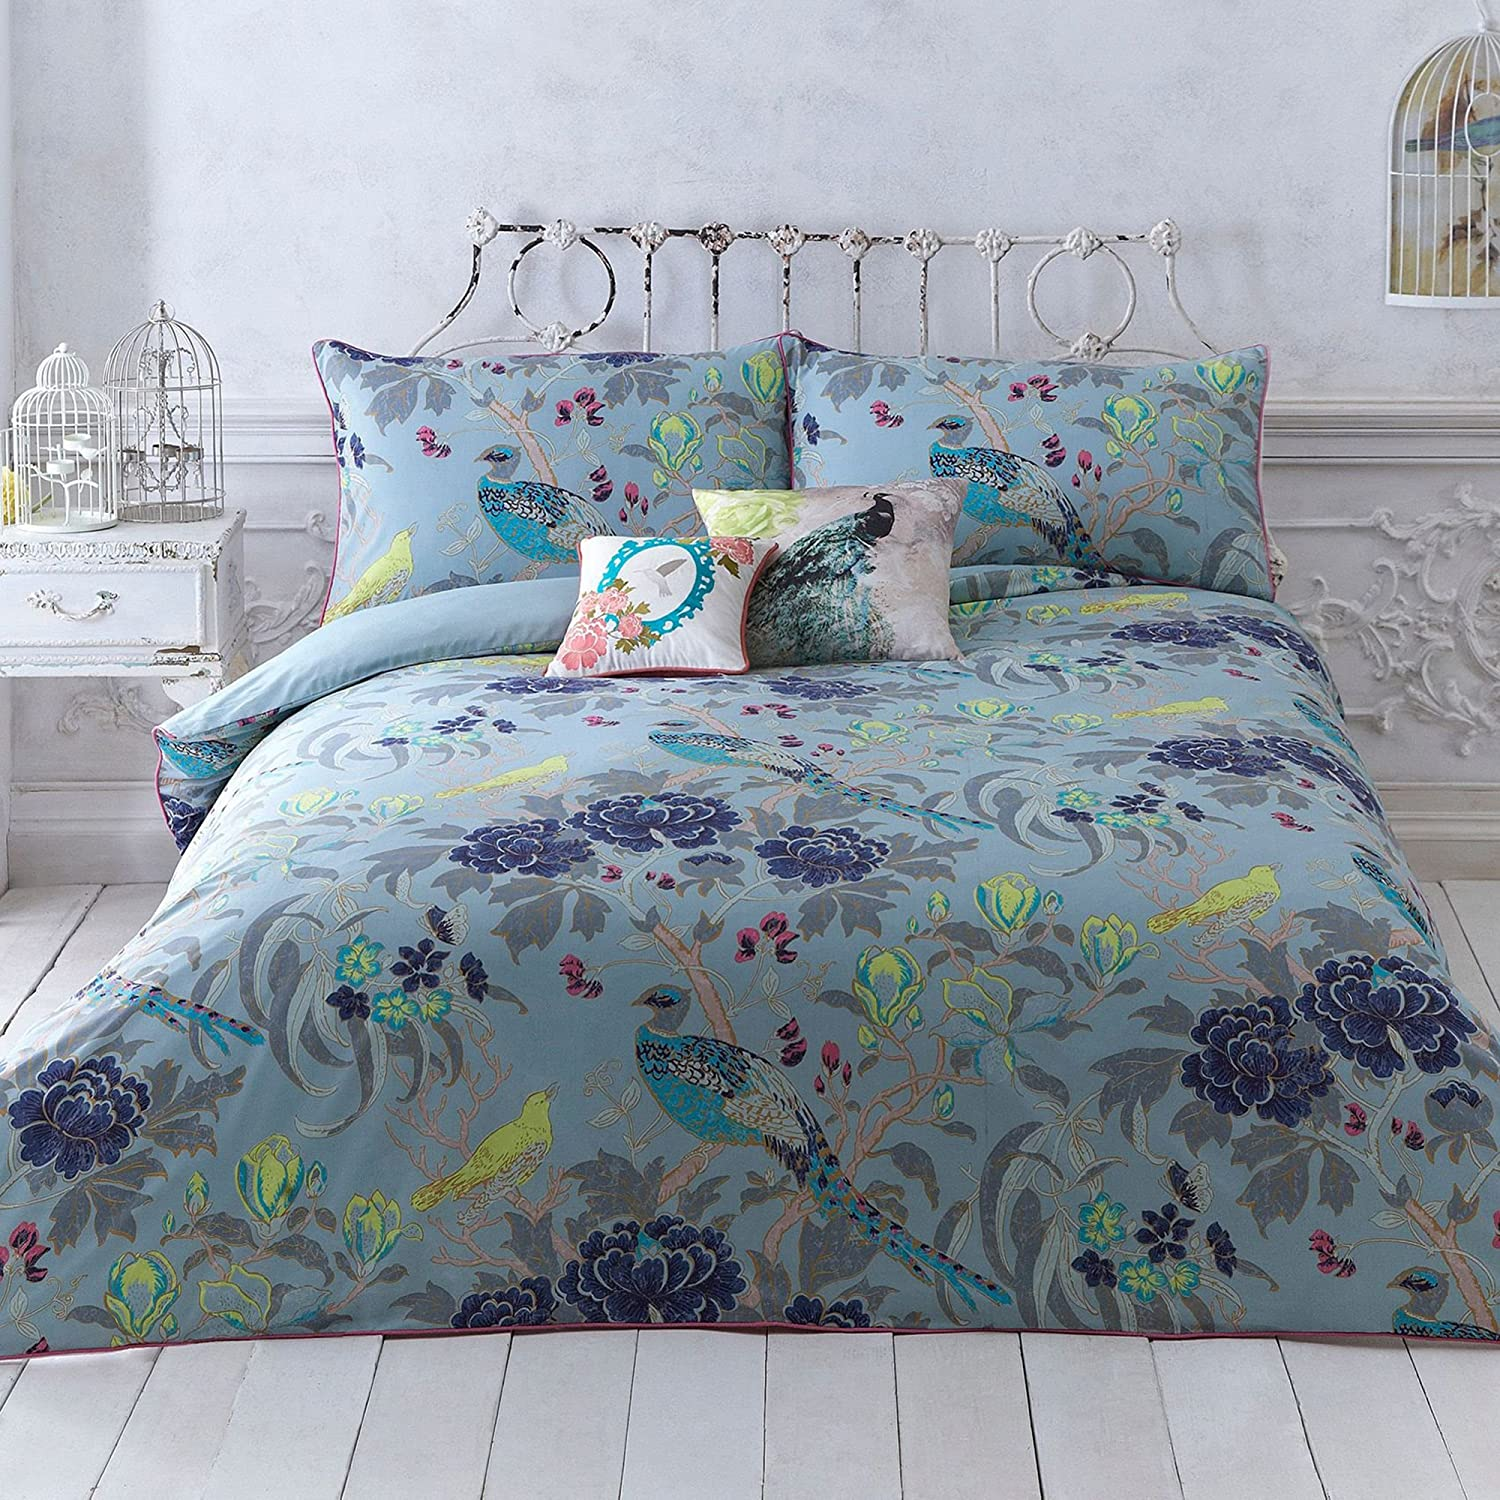 Debenhams Turquoise 'Magnolia Peacock' Bedding Set Double